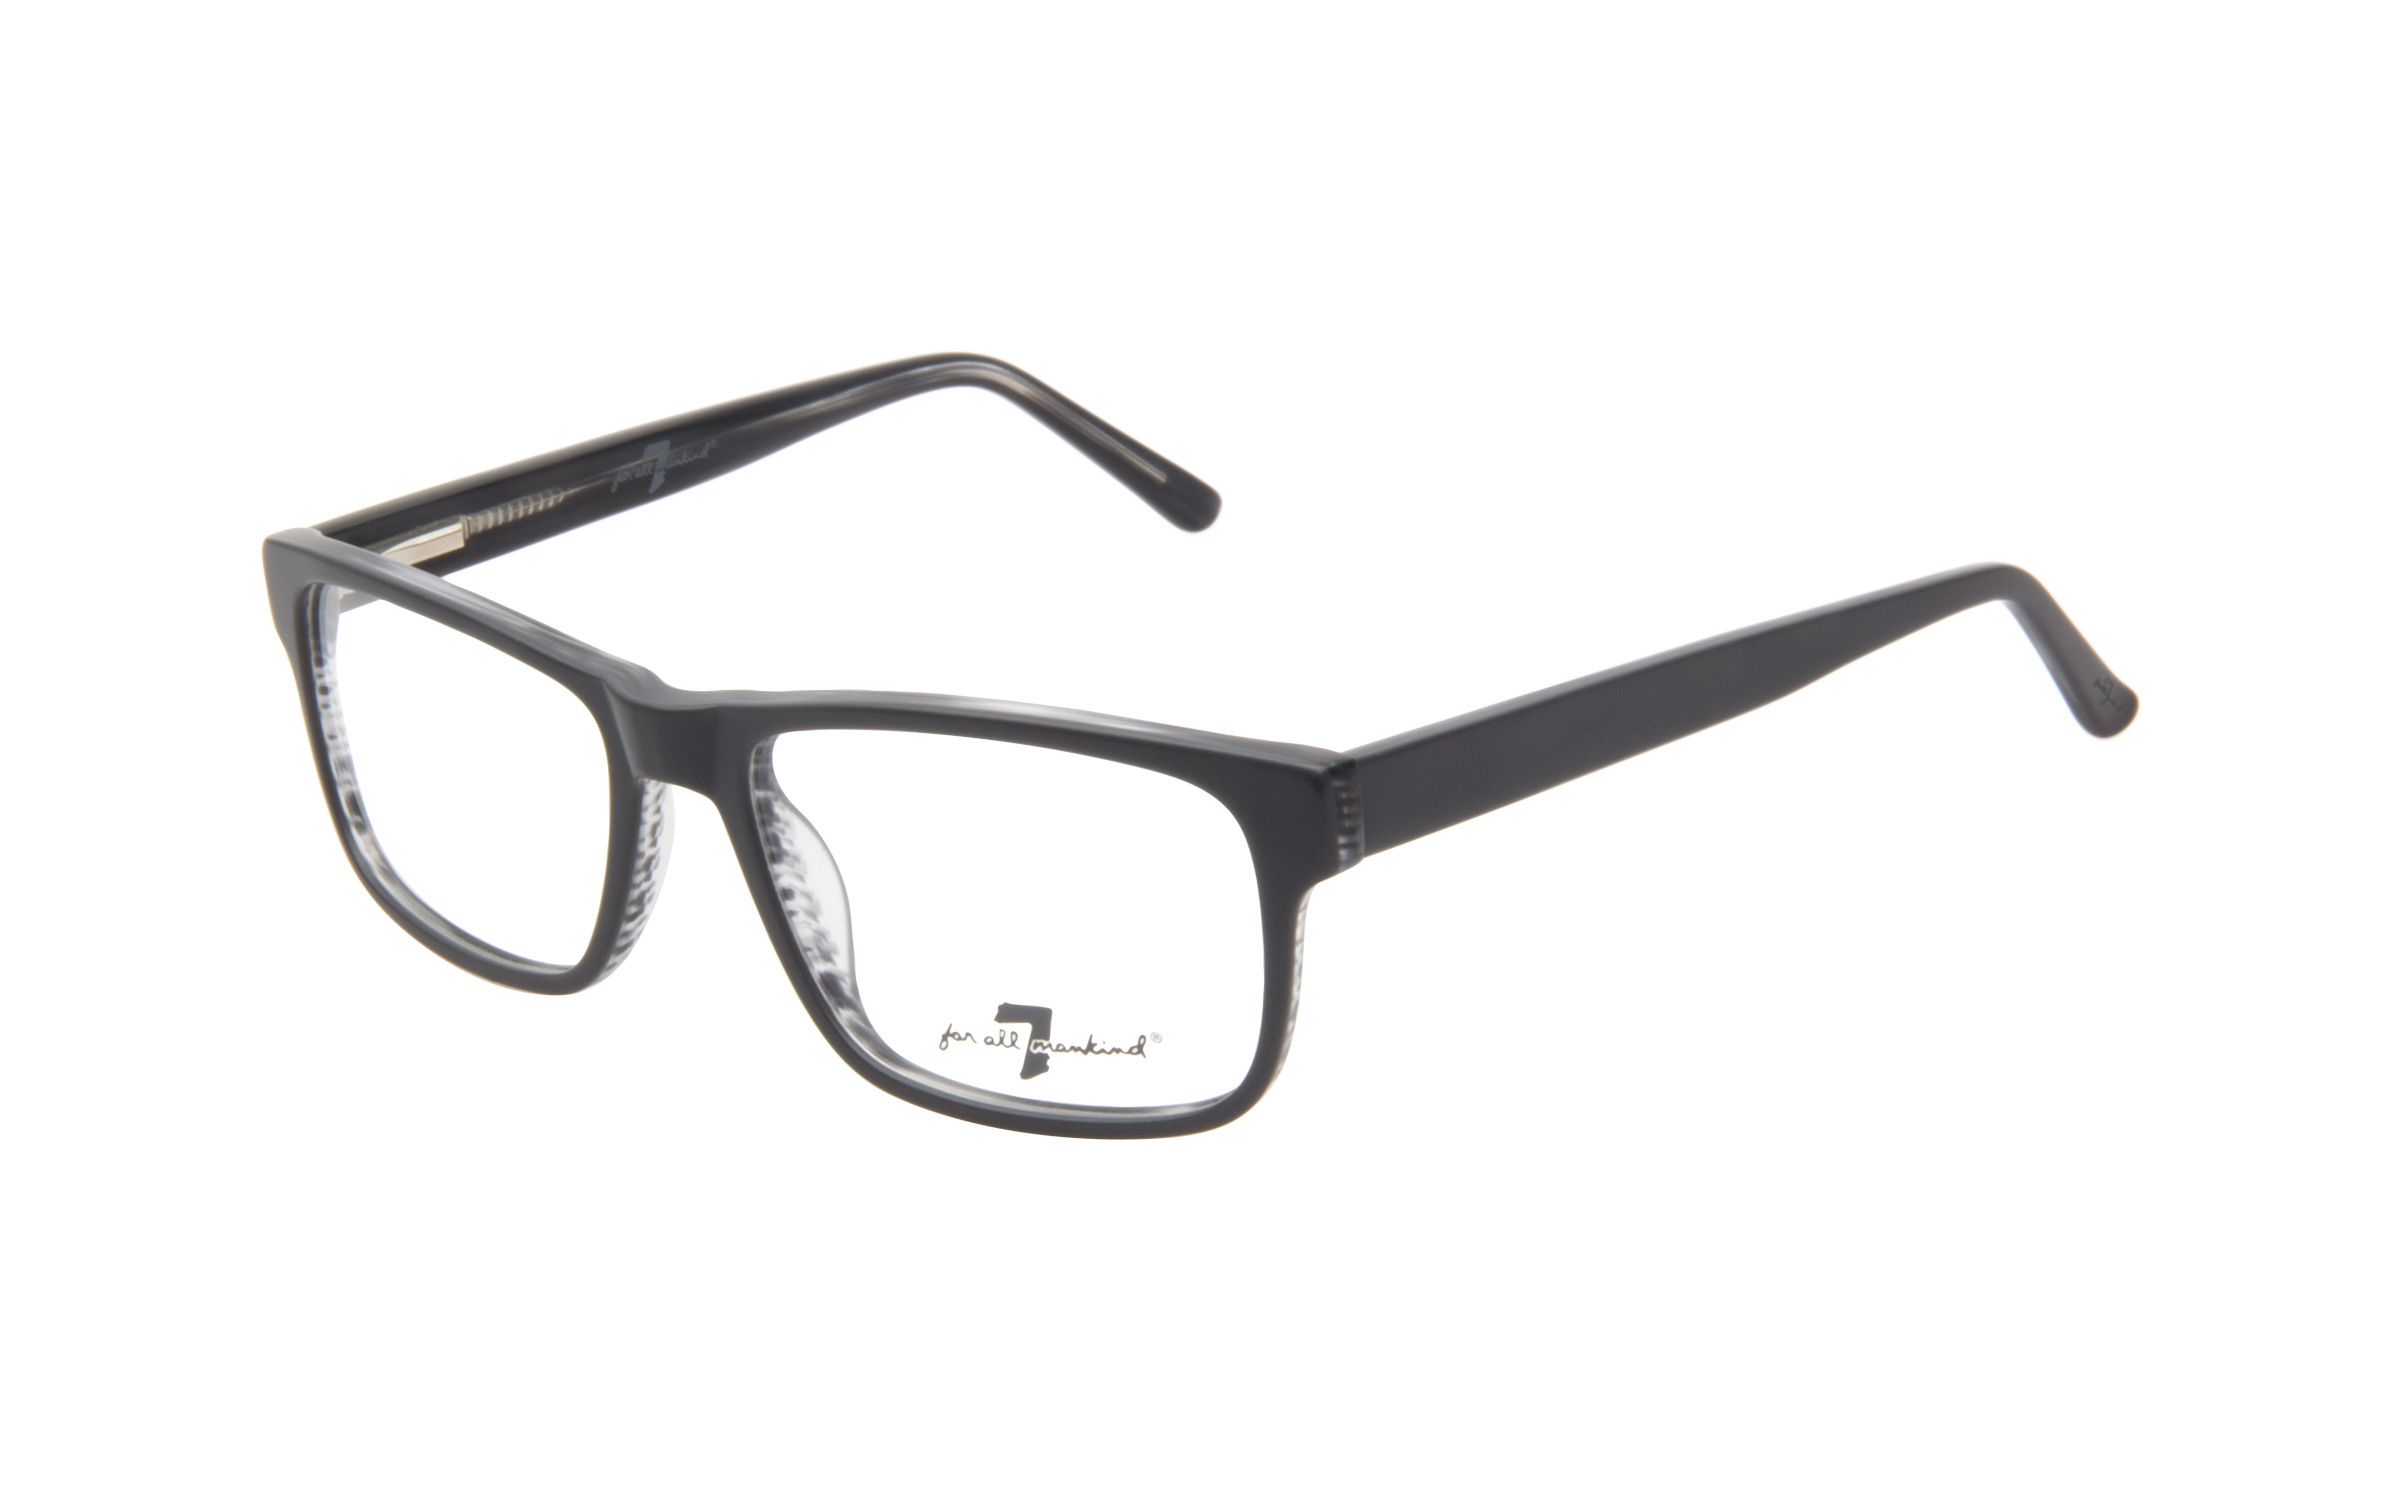 7 for All Mankind Men's Glasses Grey Acetate Online Clearly